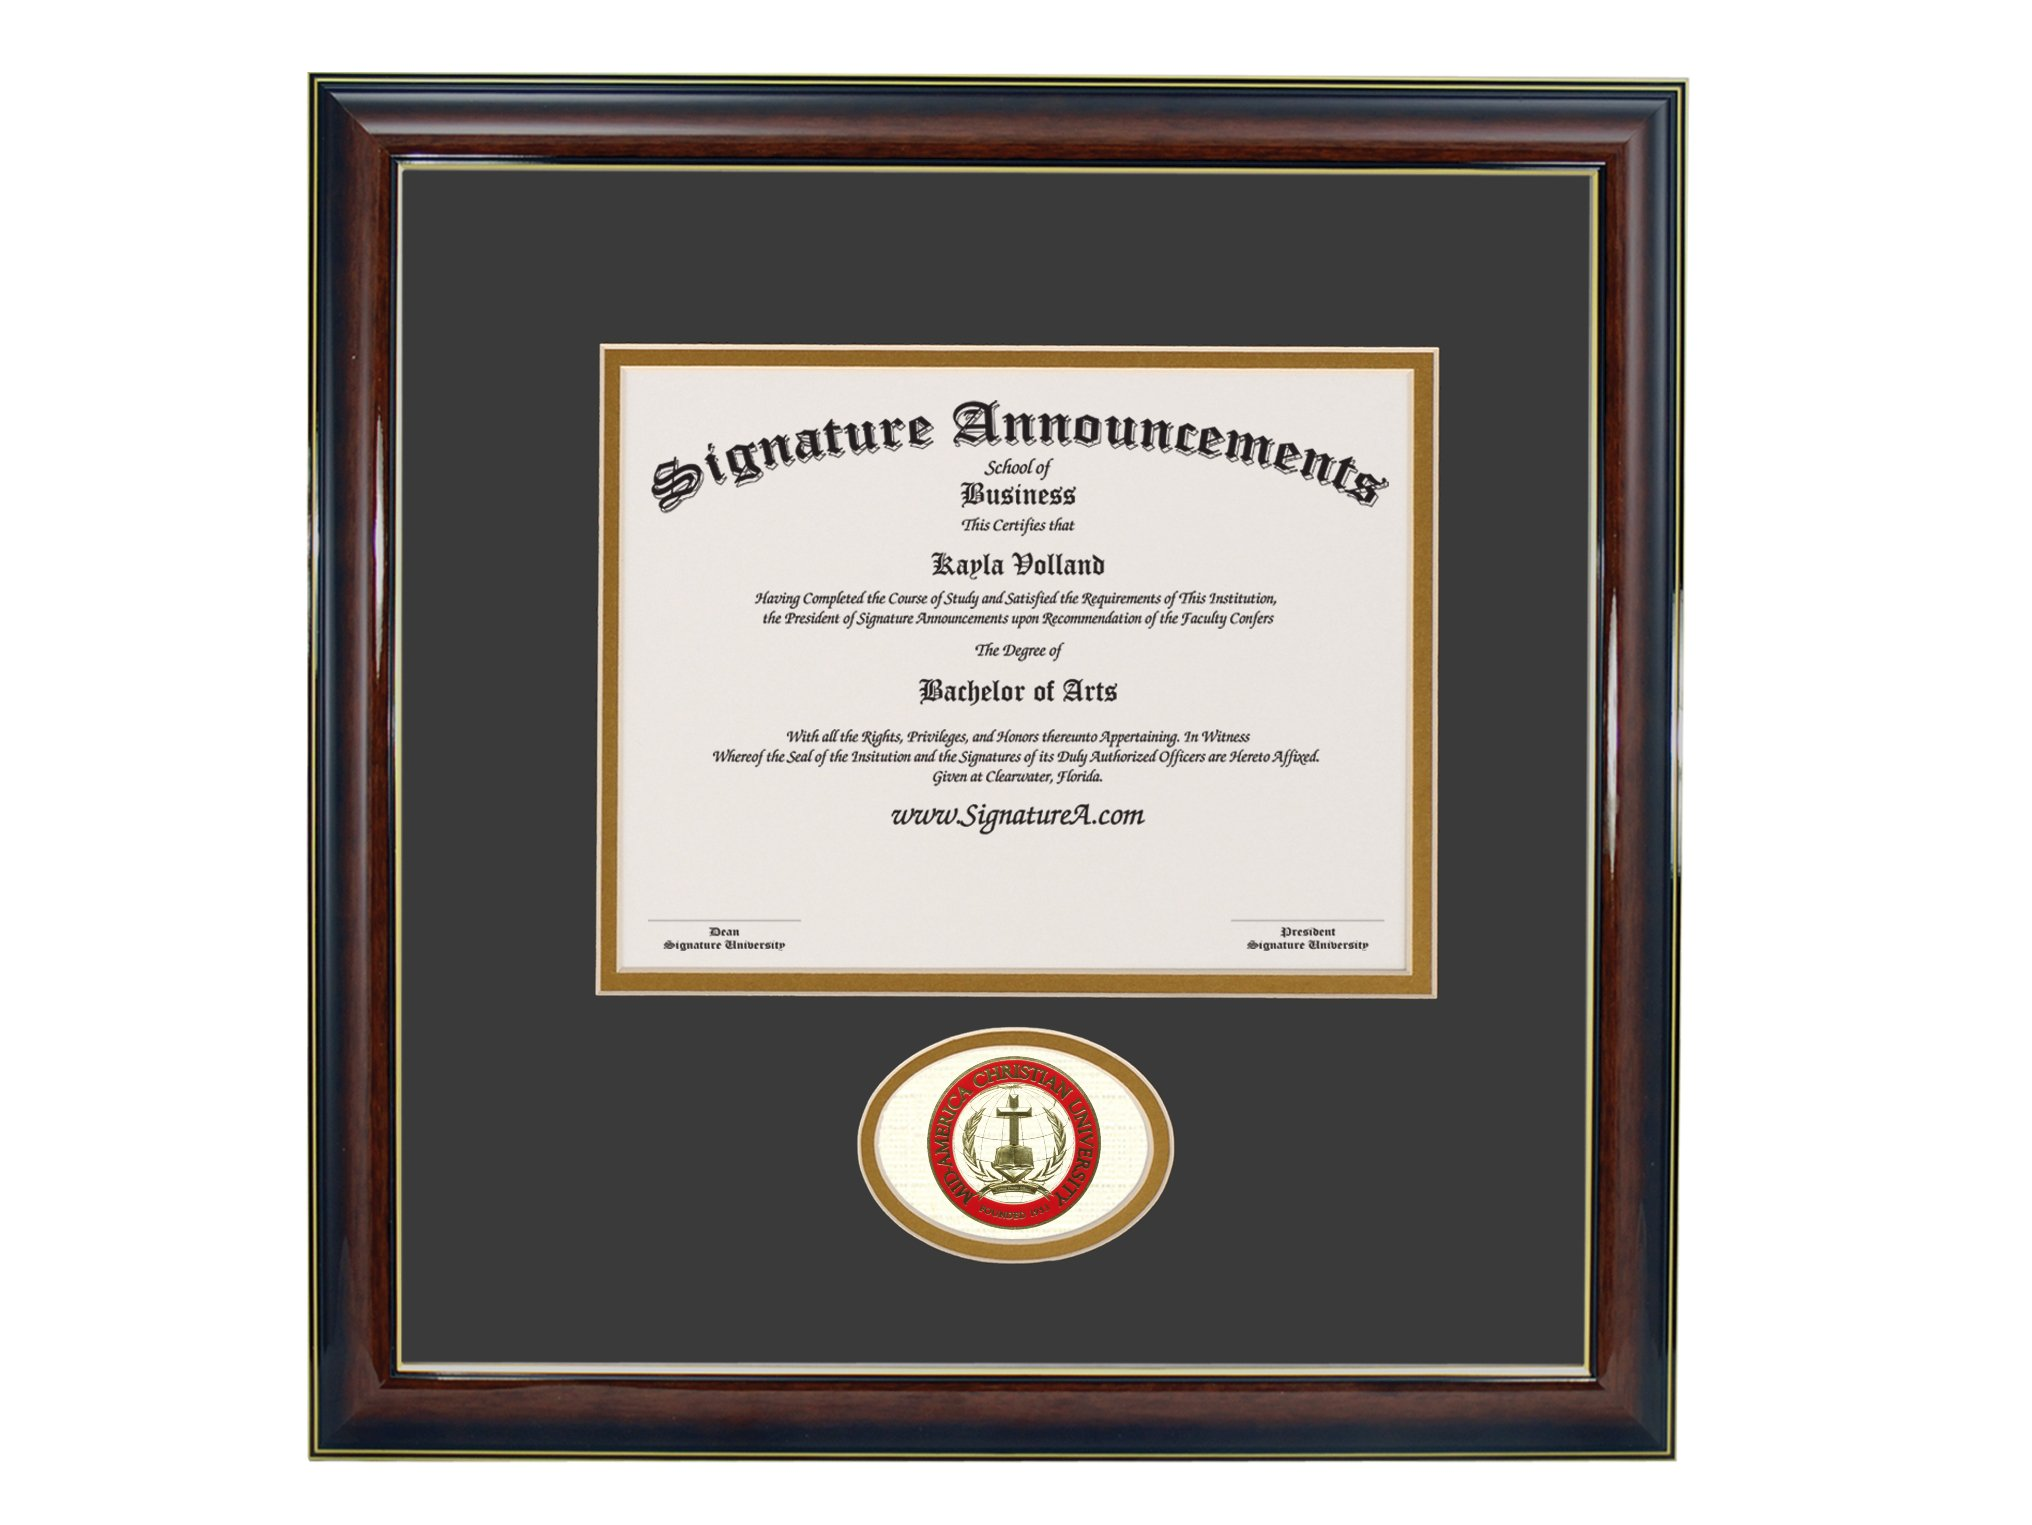 Signature Announcements Mid-America Christian University (MACU) Undergraduate and Graduate/Professional/Doctor Graduation Diploma Frame with Sculpted Foil Seal (Gloss Mahogany w/Gold Accent, 16 x 16) by Signature Announcements